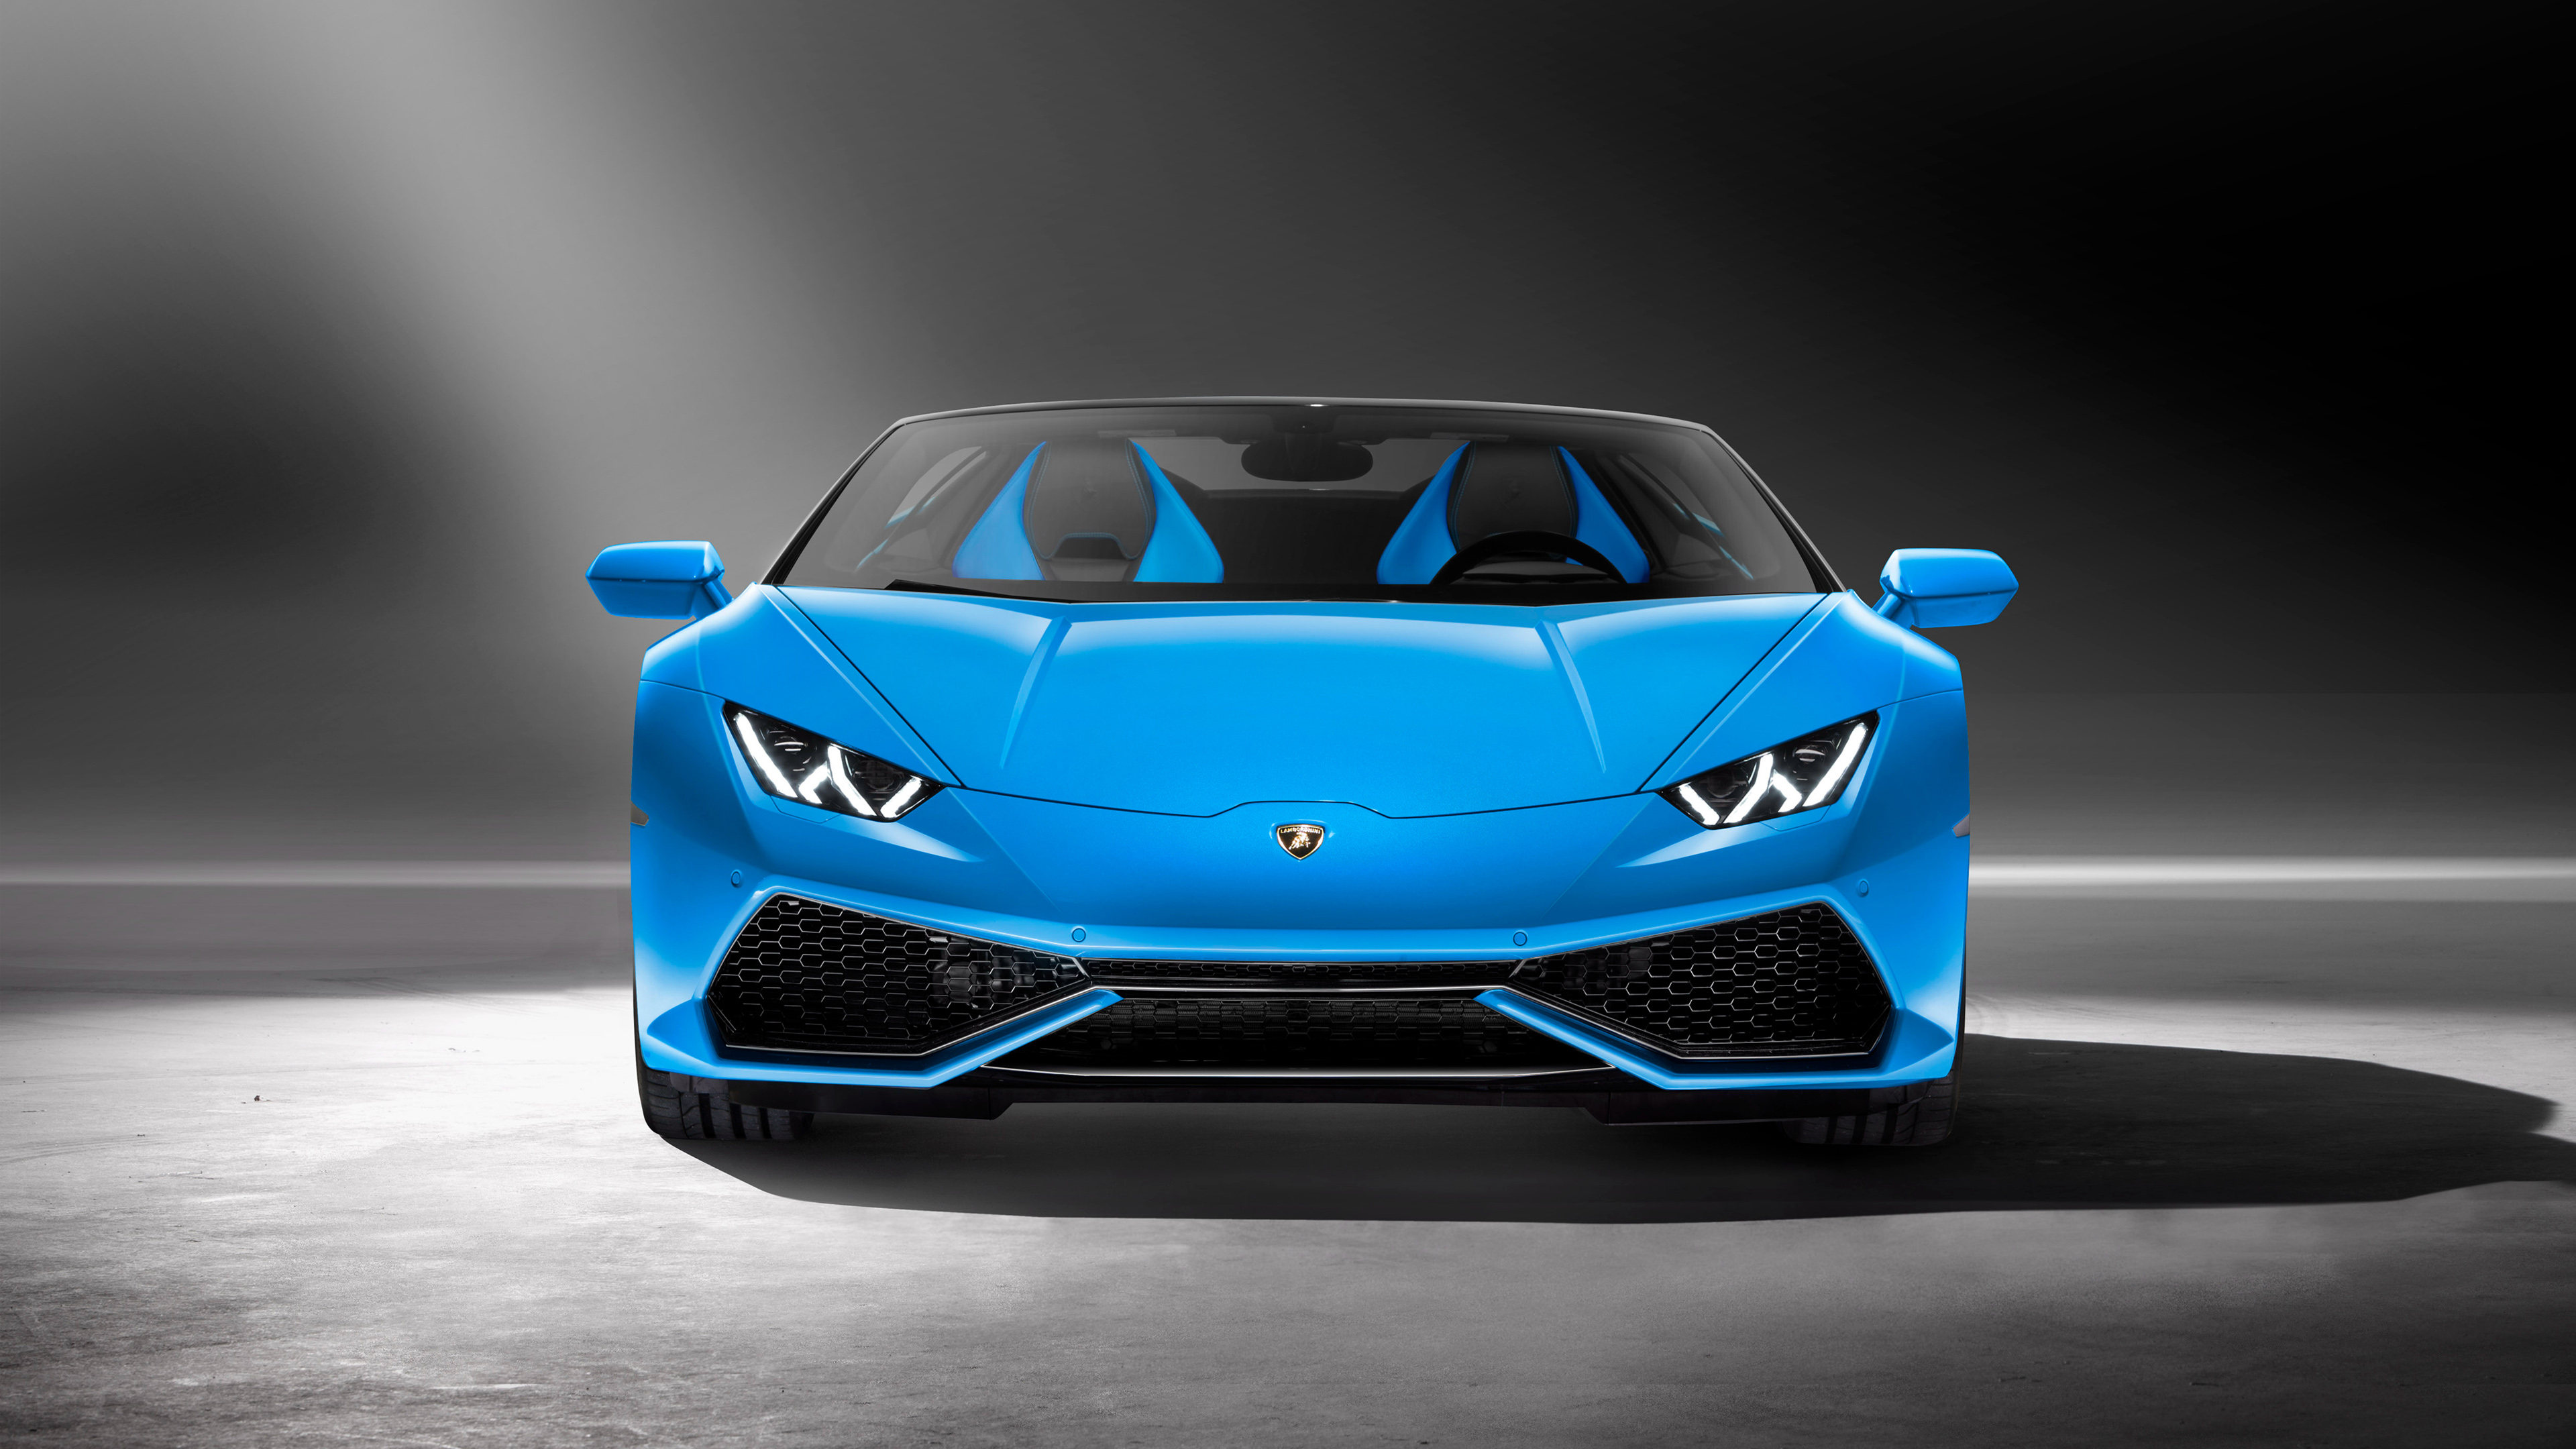 2016 lamborghini huracan lp 610 4 spyder wallpaper hd car wallpapers. Black Bedroom Furniture Sets. Home Design Ideas